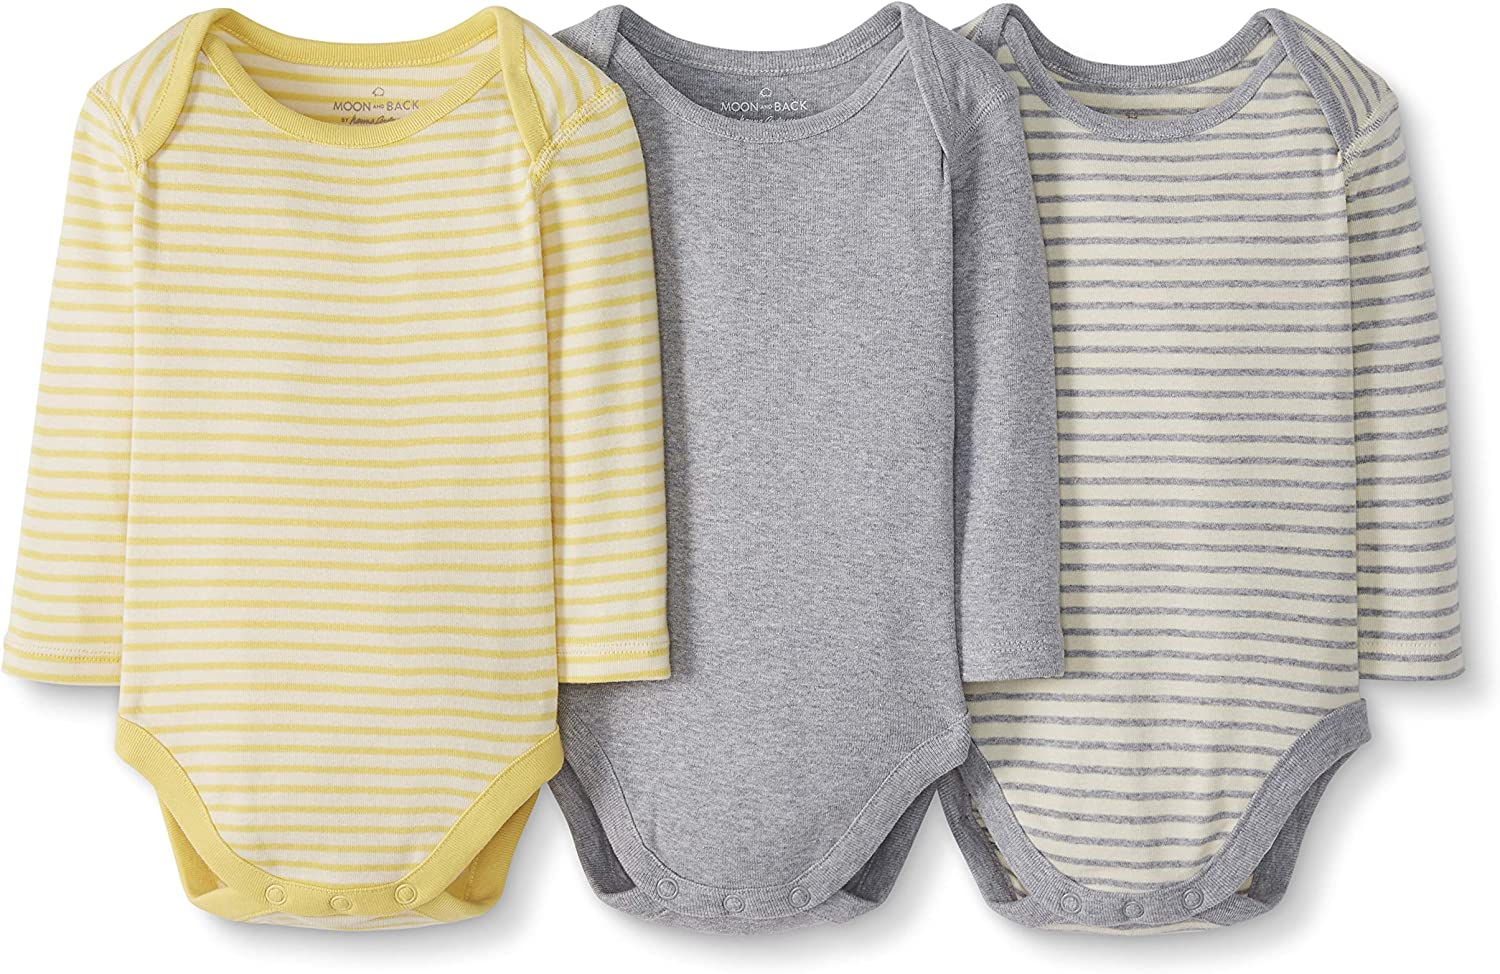 Moon and Back by Hanna Andersson Baby Boys and Girls 3 Pk Long Sleeve Bodysuit